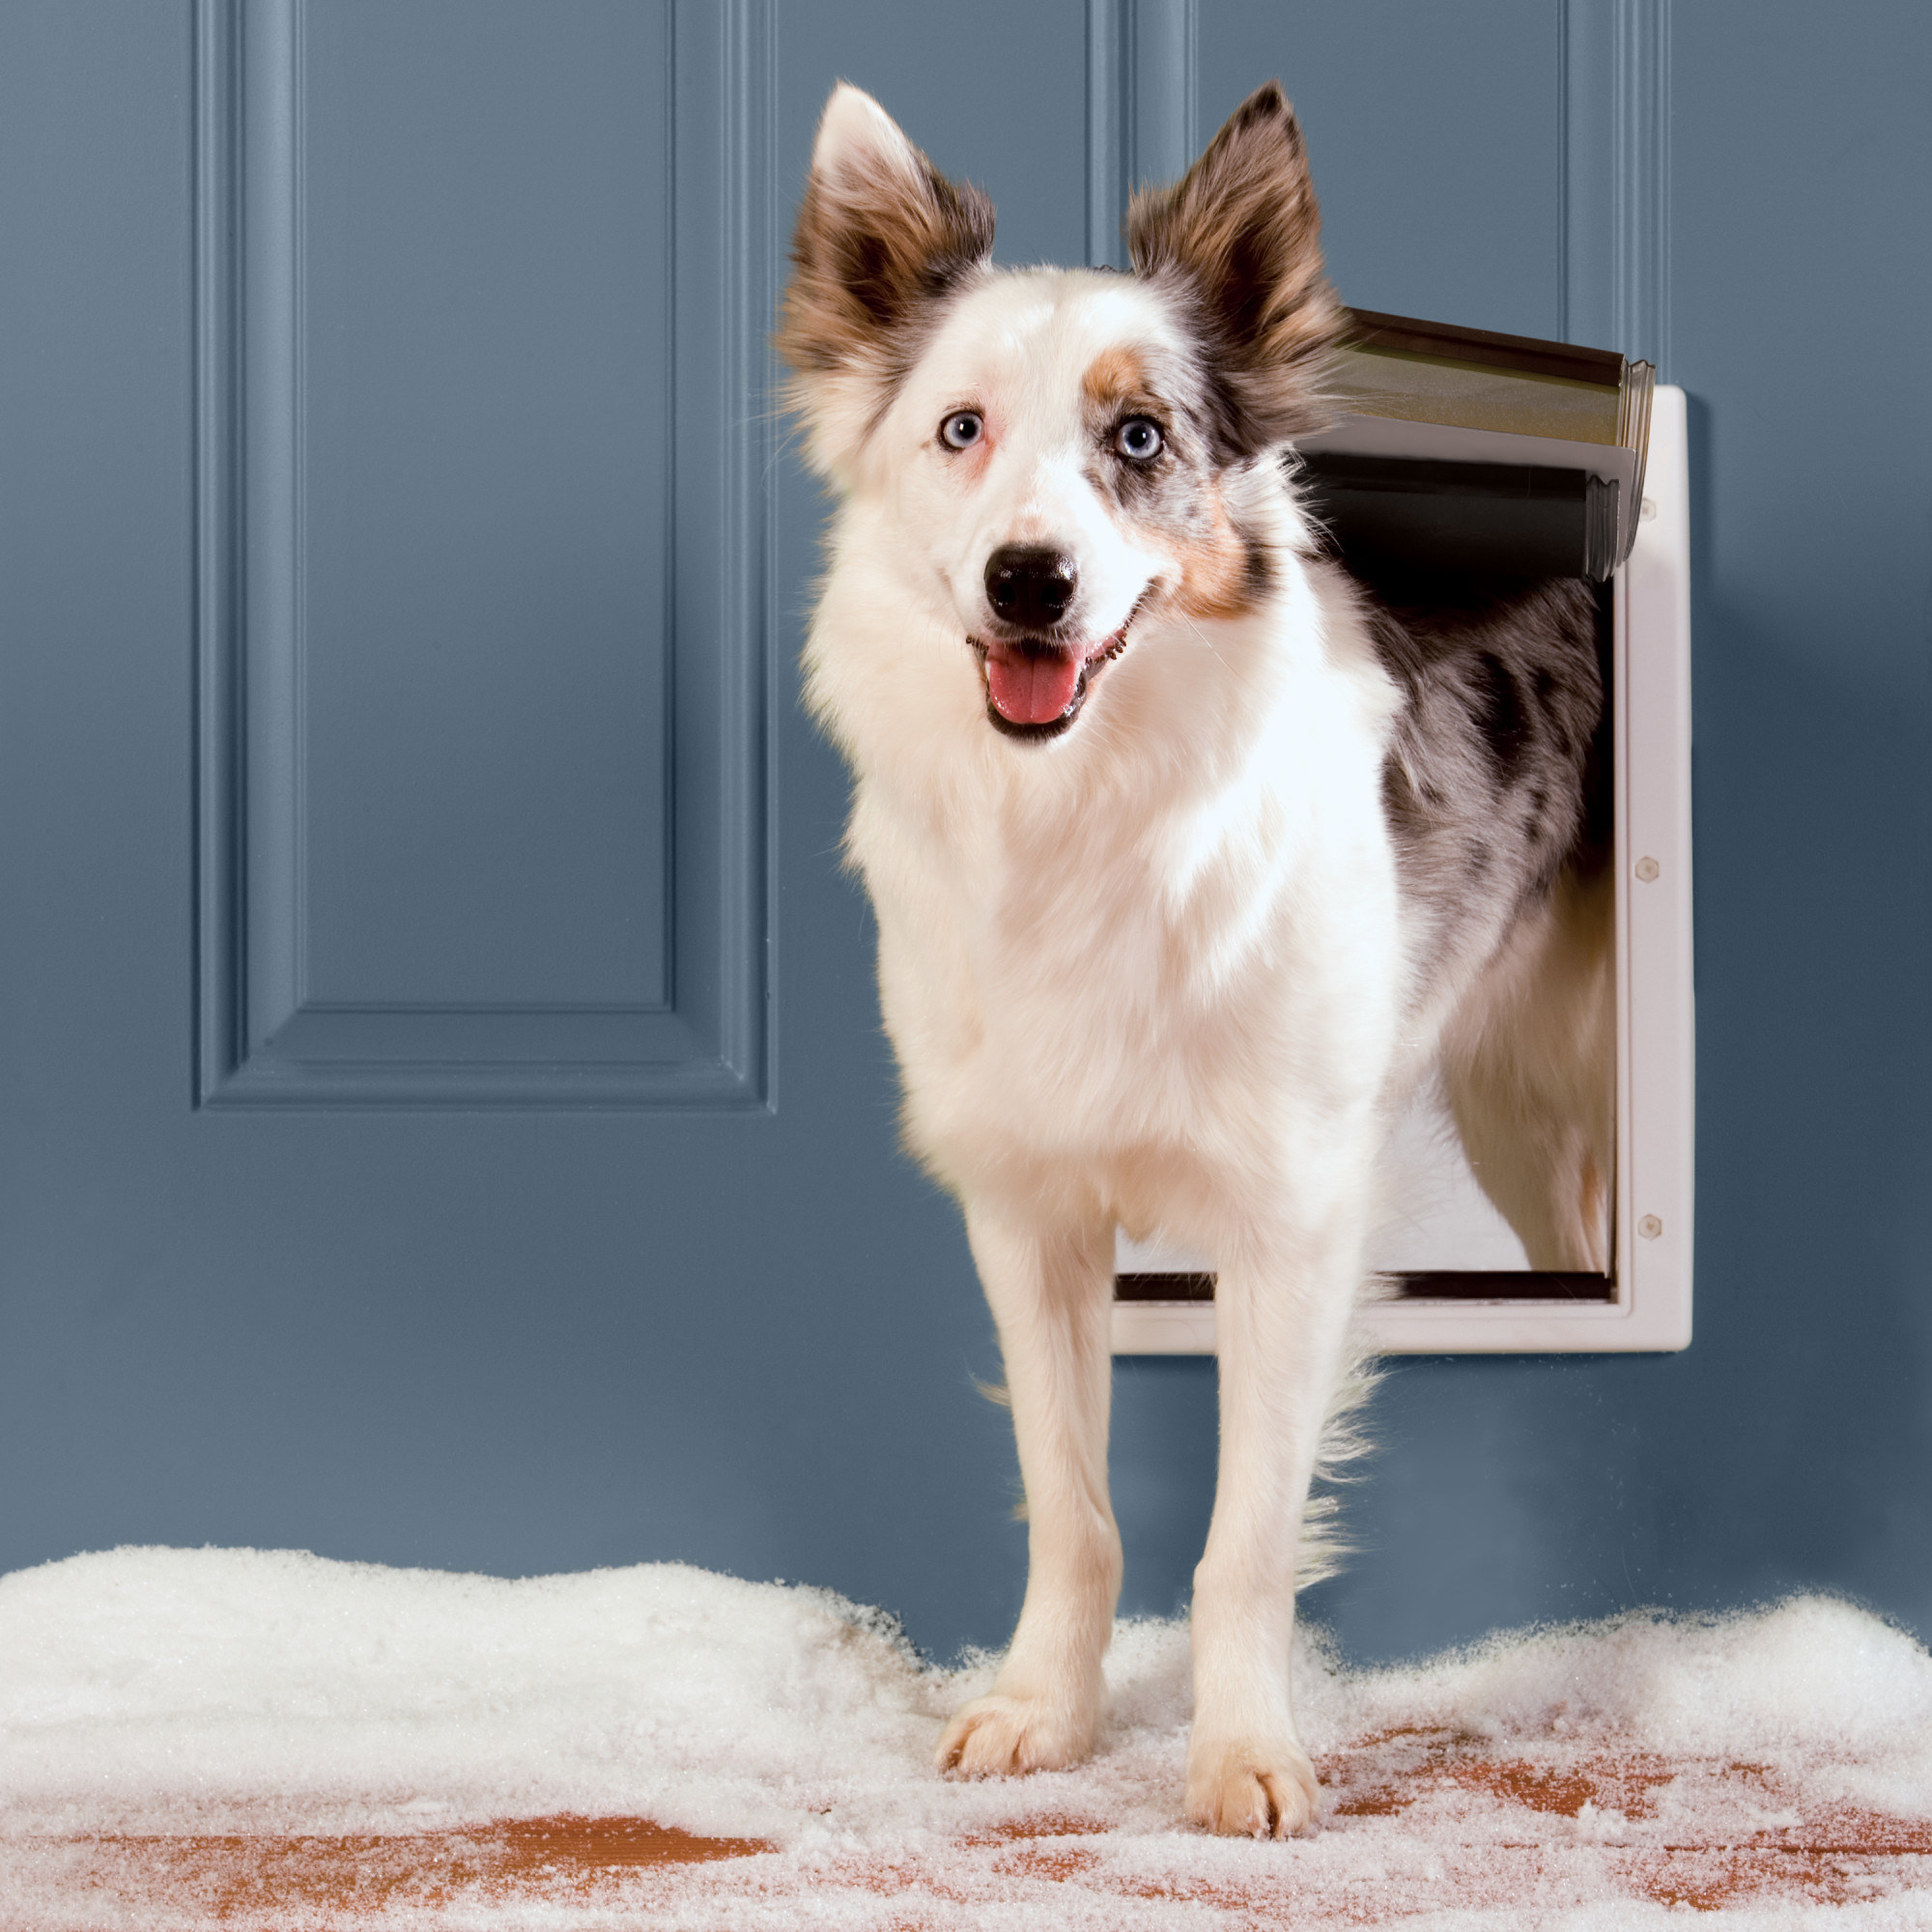 Dog sticking out of the weatherproof pet door with a white frame inside a blue front door